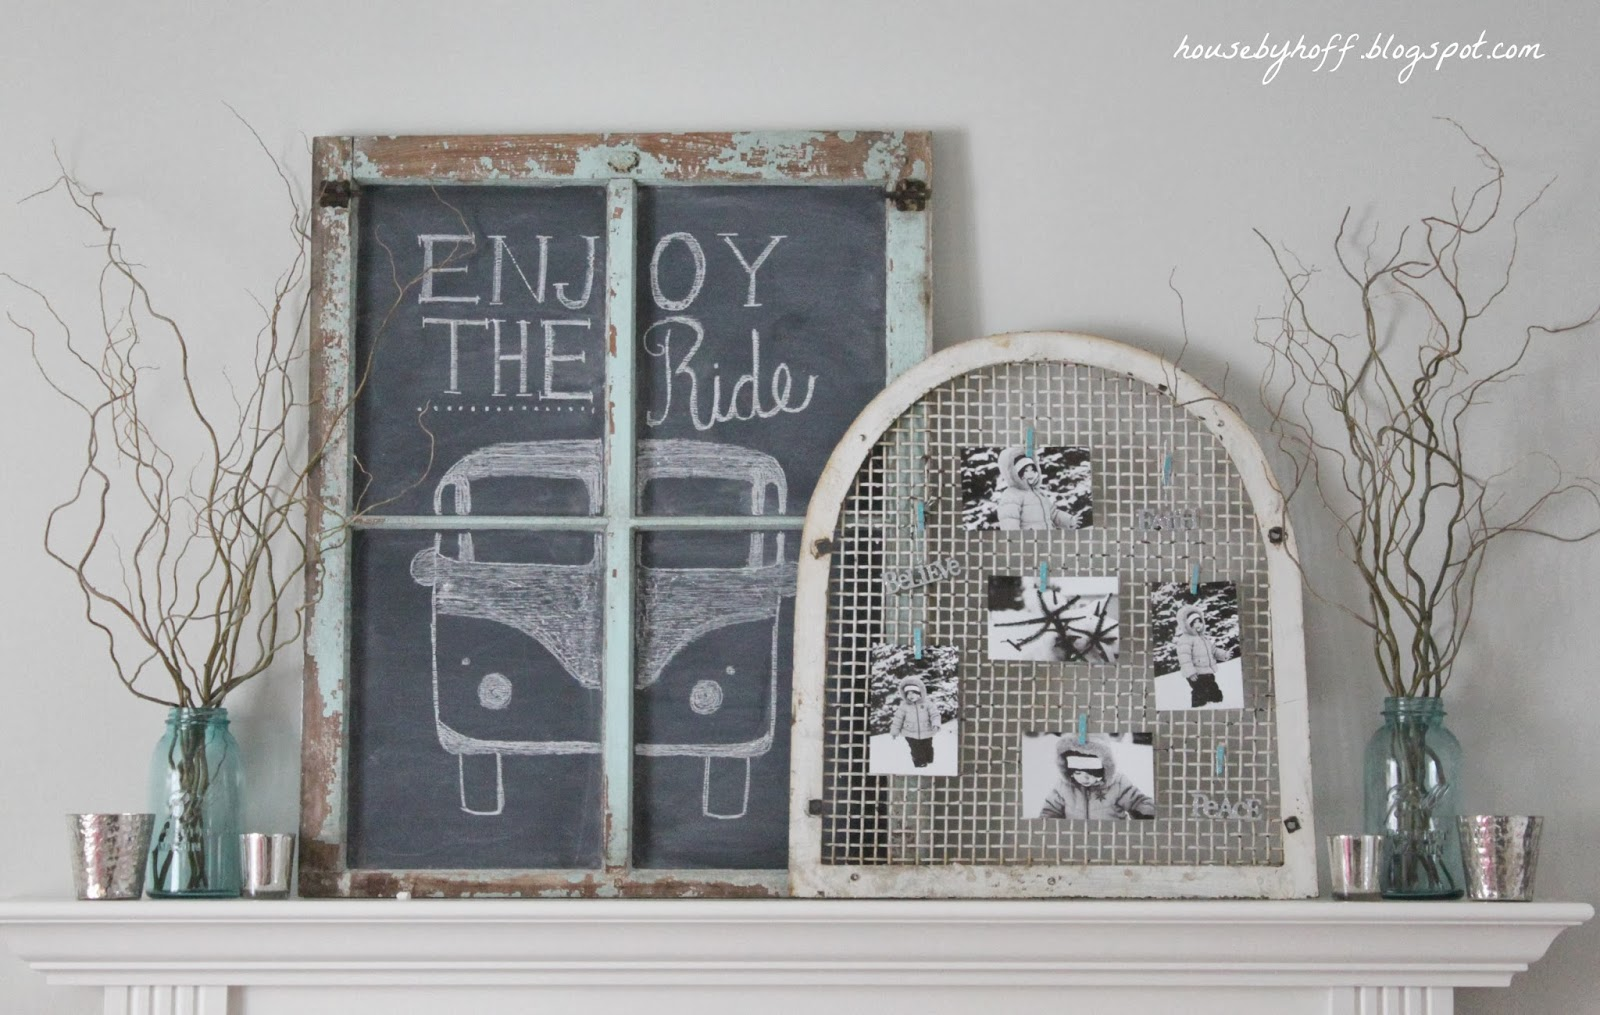 Easy Quick and Cheap Decor Ideas via housebyhoff.blogspot.com